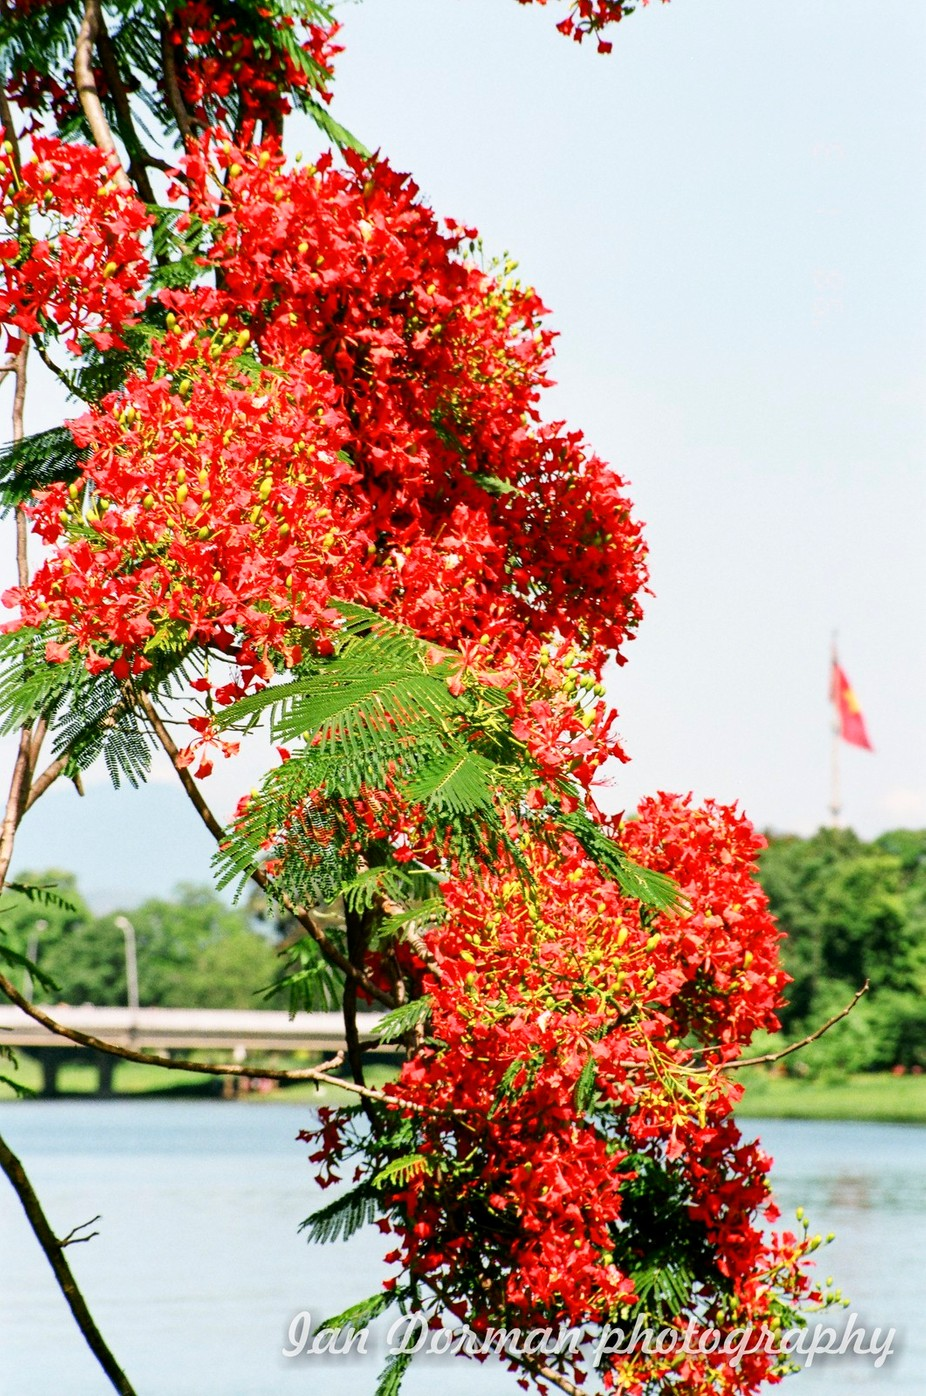 Colourful flowers in Vietnam